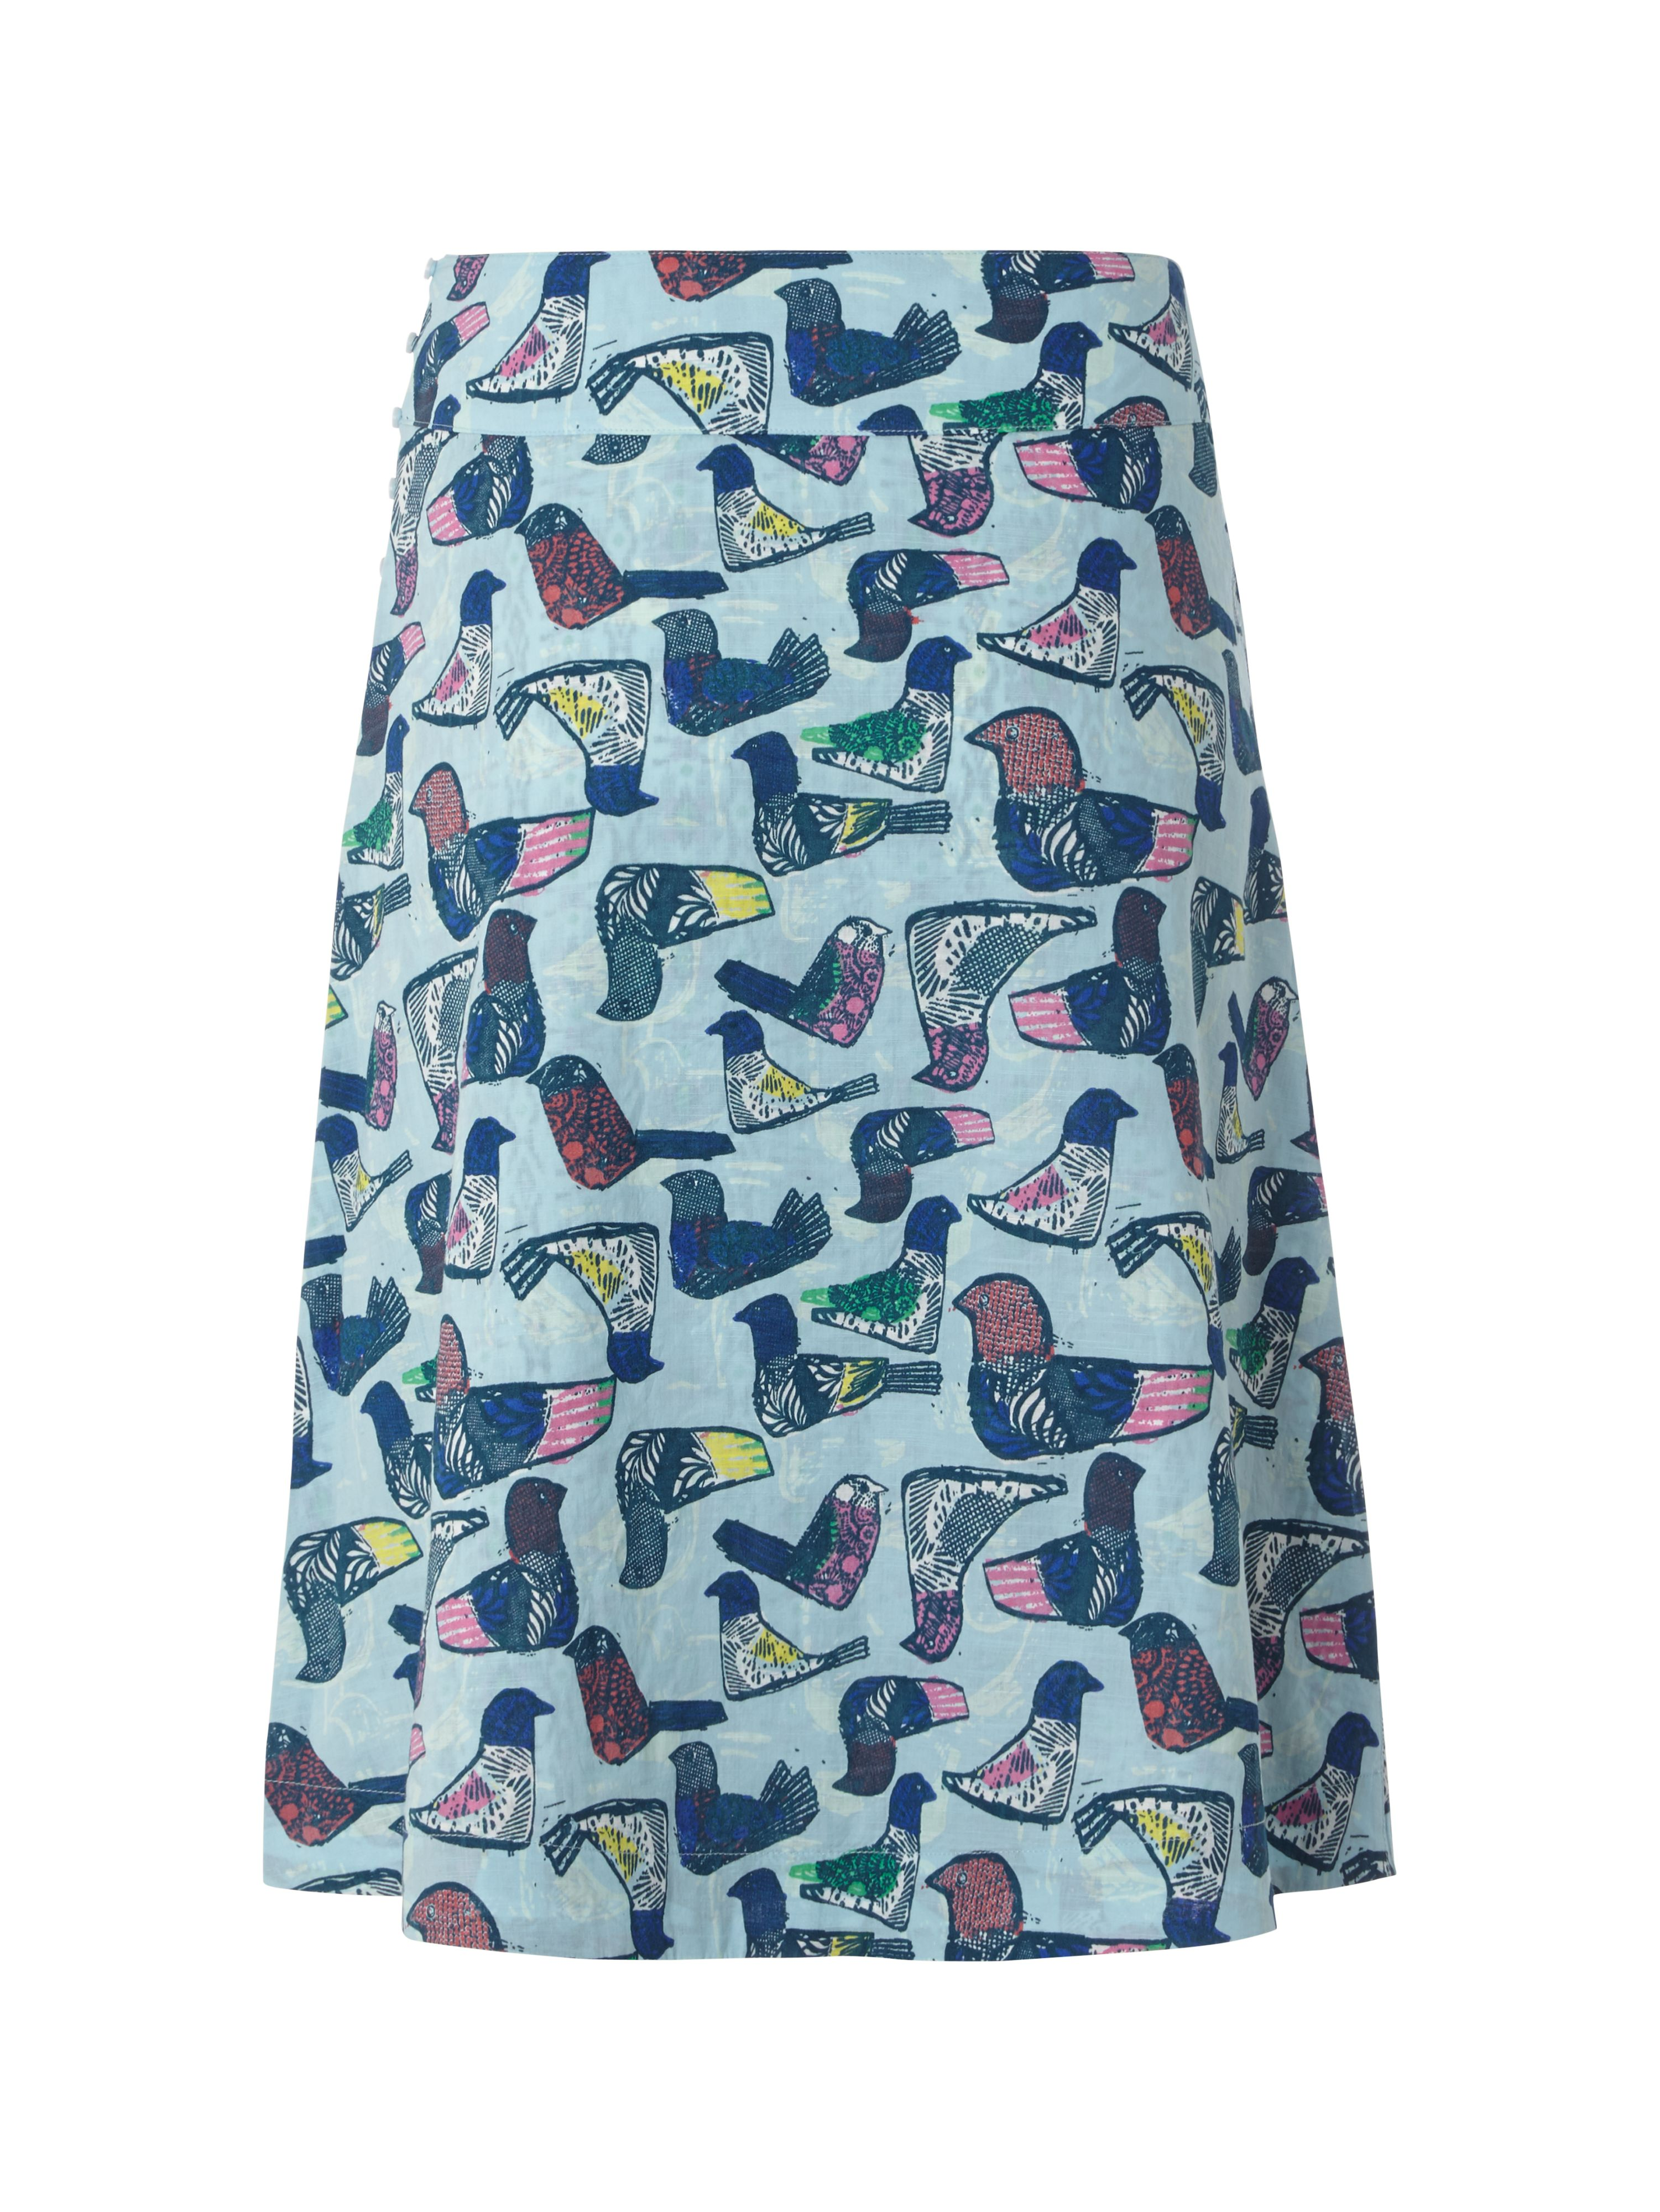 Birdy reversible skirt